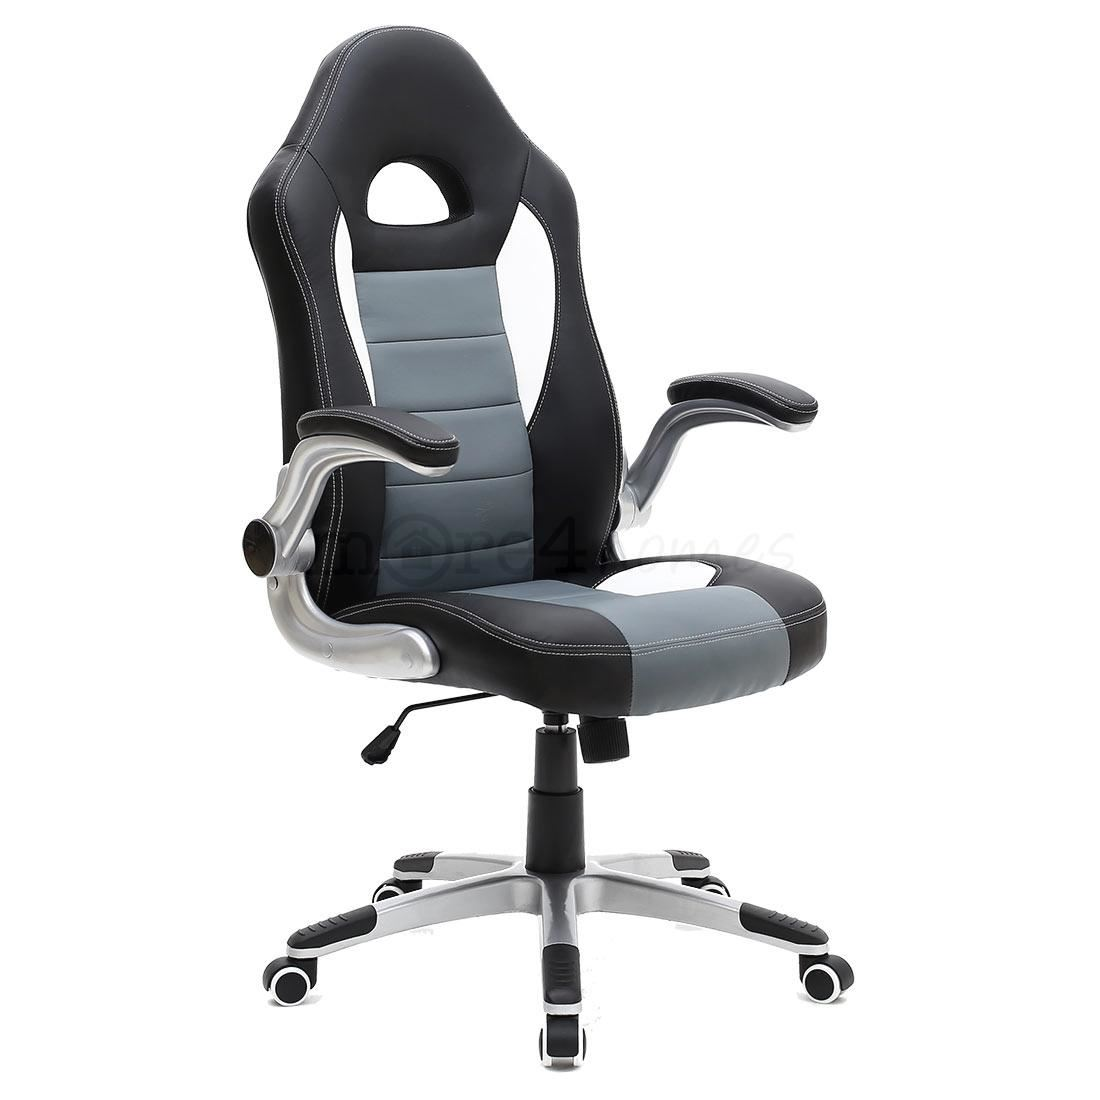 desk chair adjustable whiskey barrel chairs and table cruz sport racing car office leather